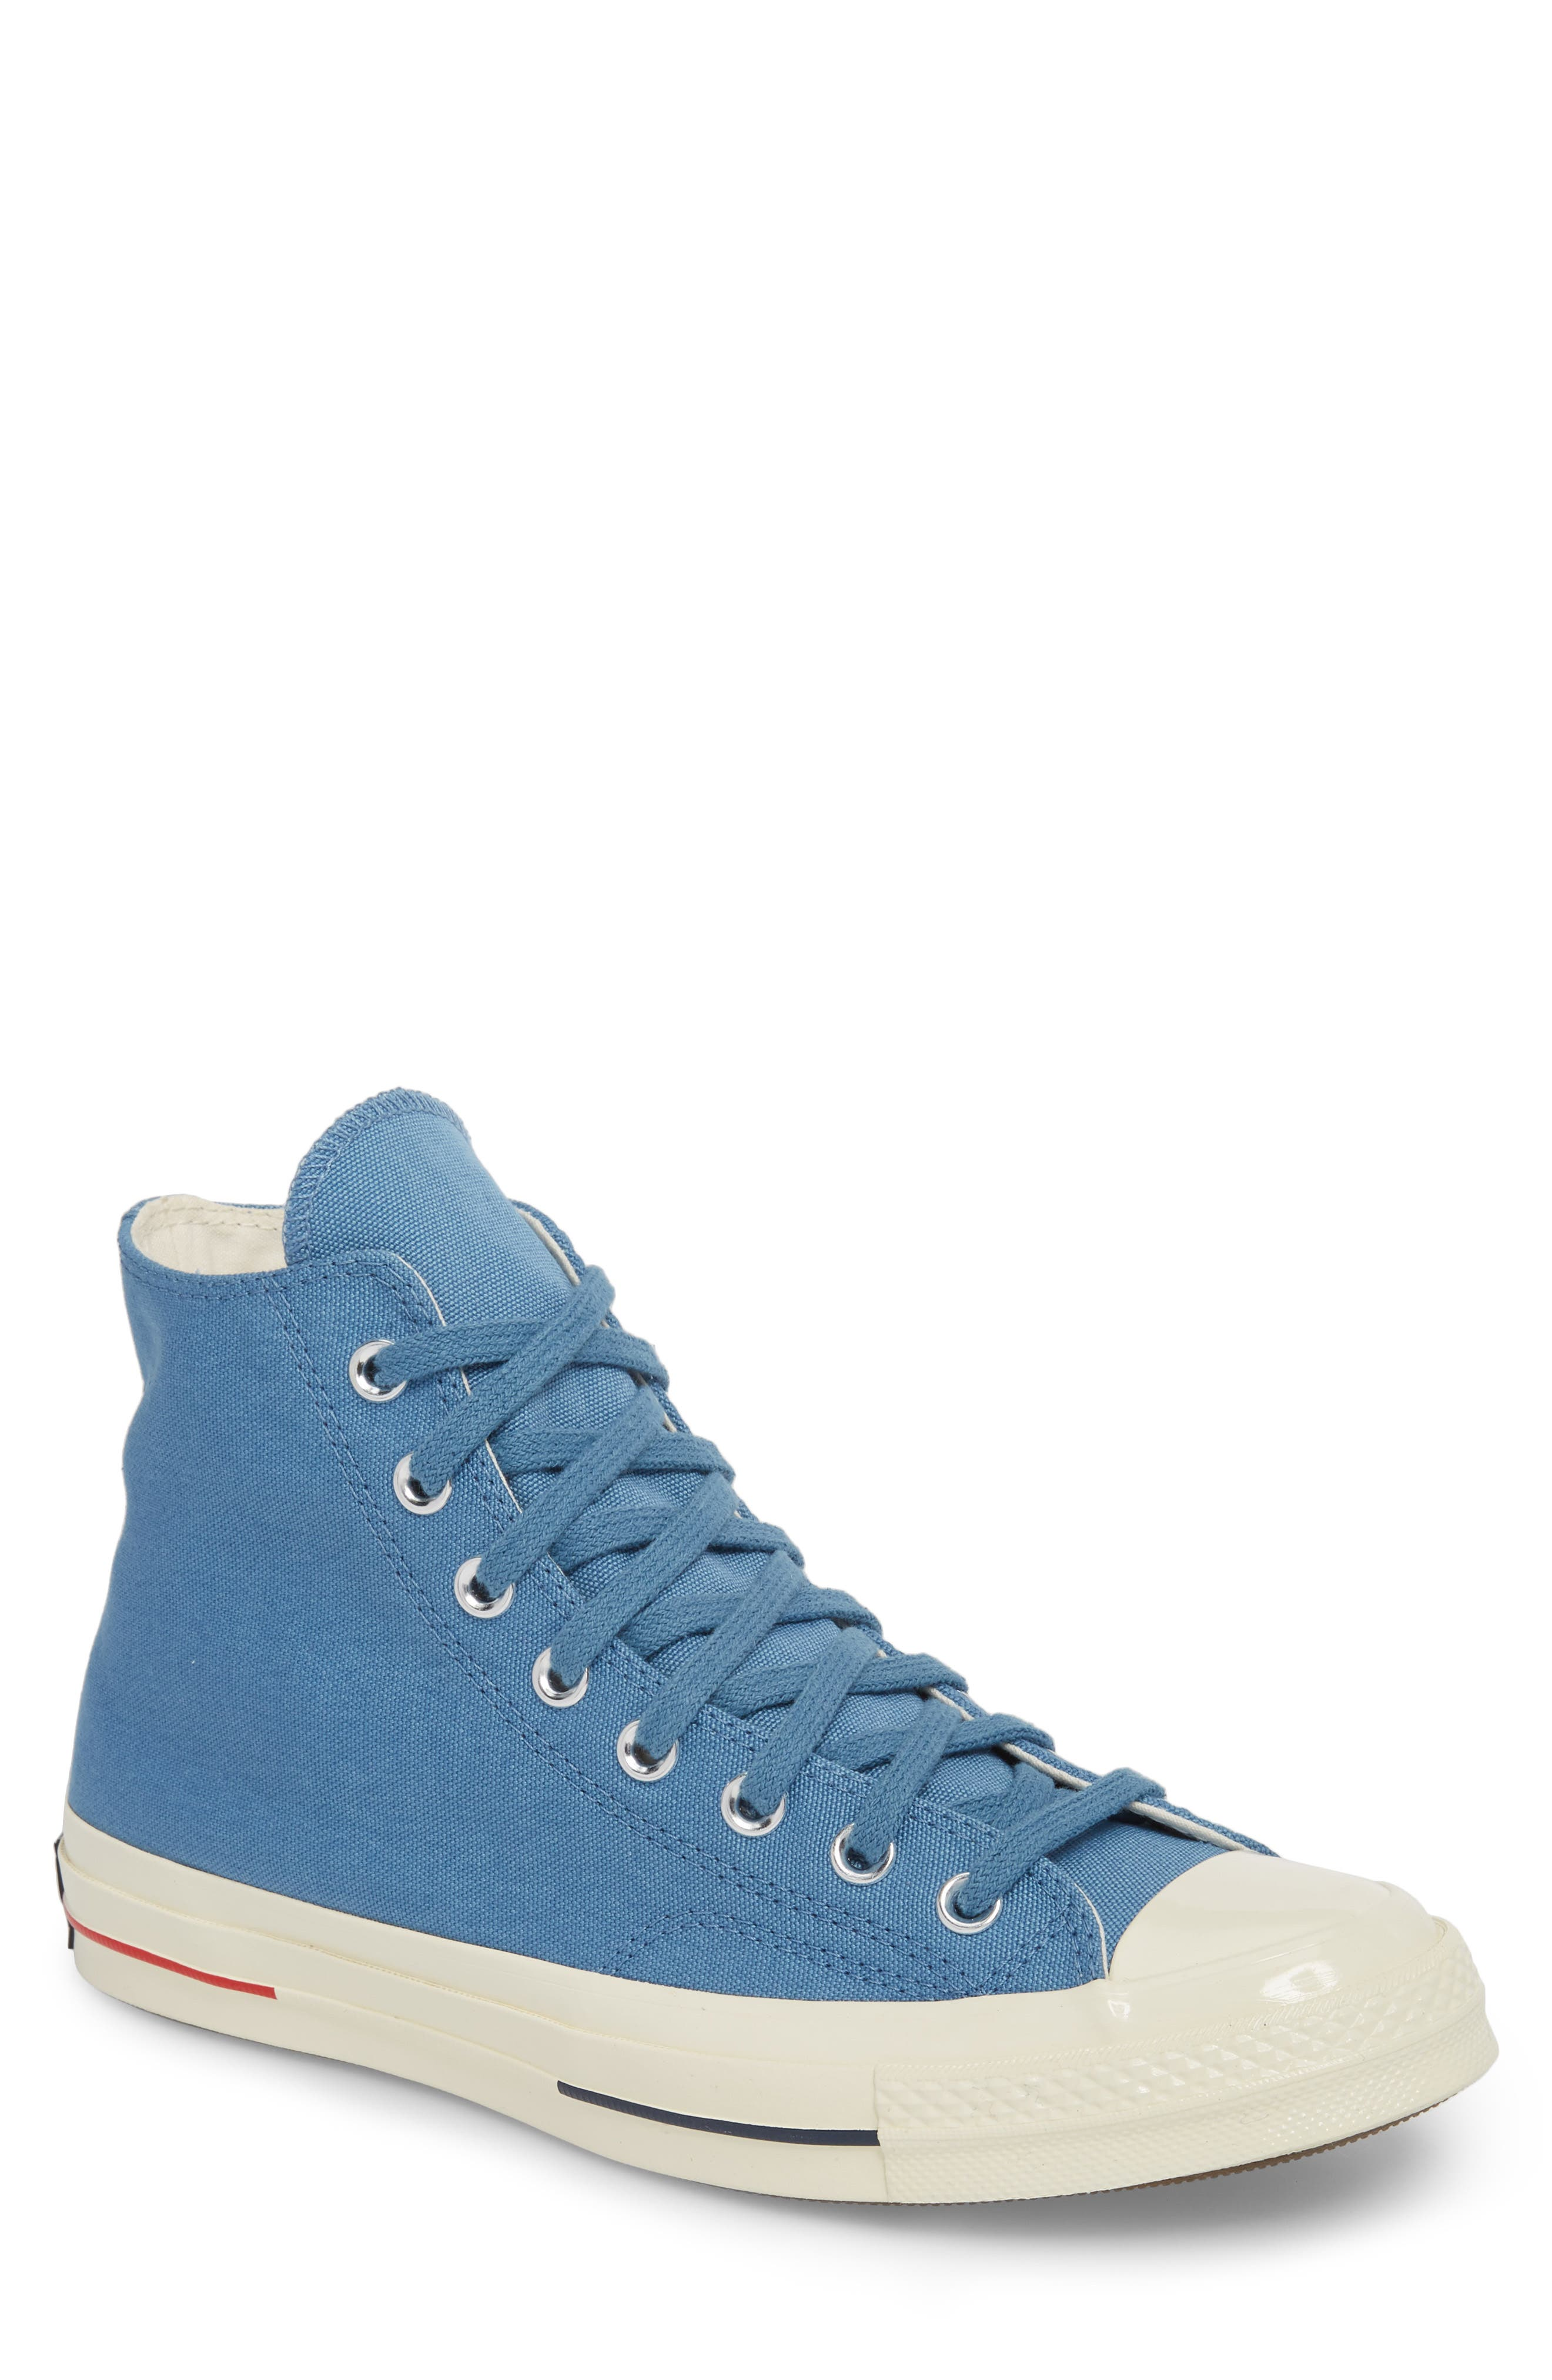 Chuck Taylor<sup>®</sup> All Star<sup>®</sup> '70s Heritage High Top Sneaker,                         Main,                         color, Aegean Storm